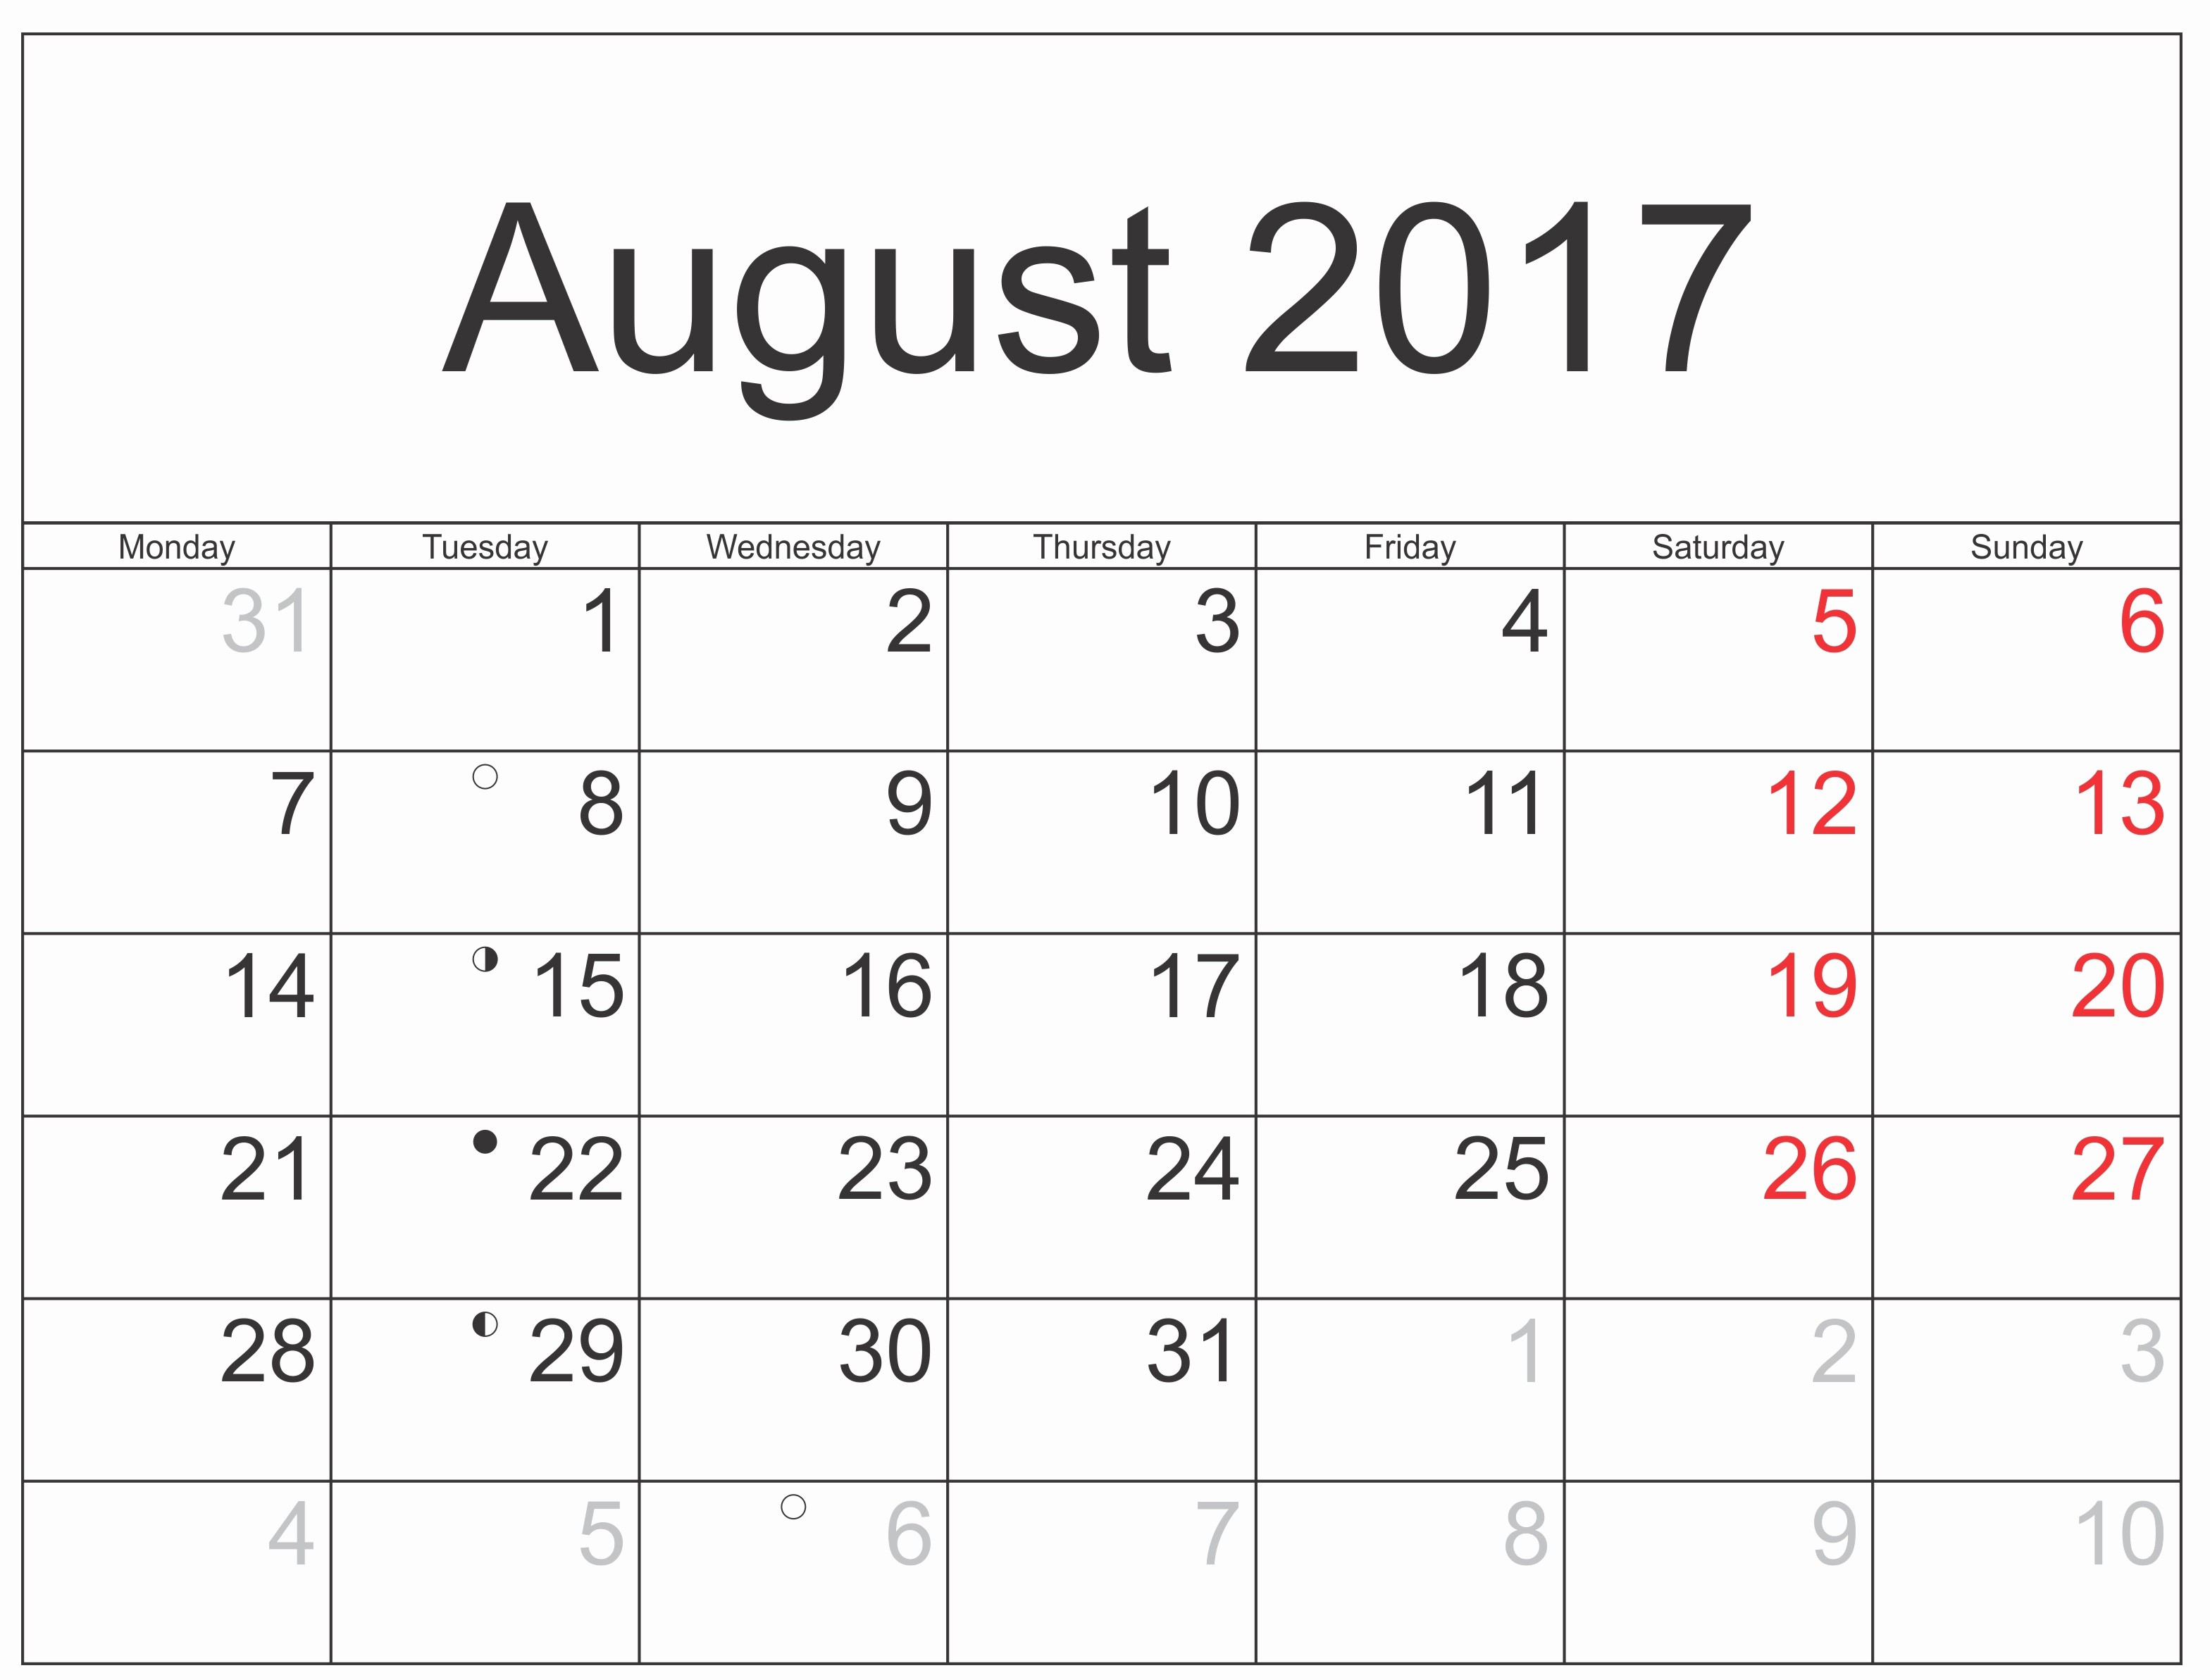 Blank Calendar Template August 2017 Fresh August 2017 Printable Calendar Templates